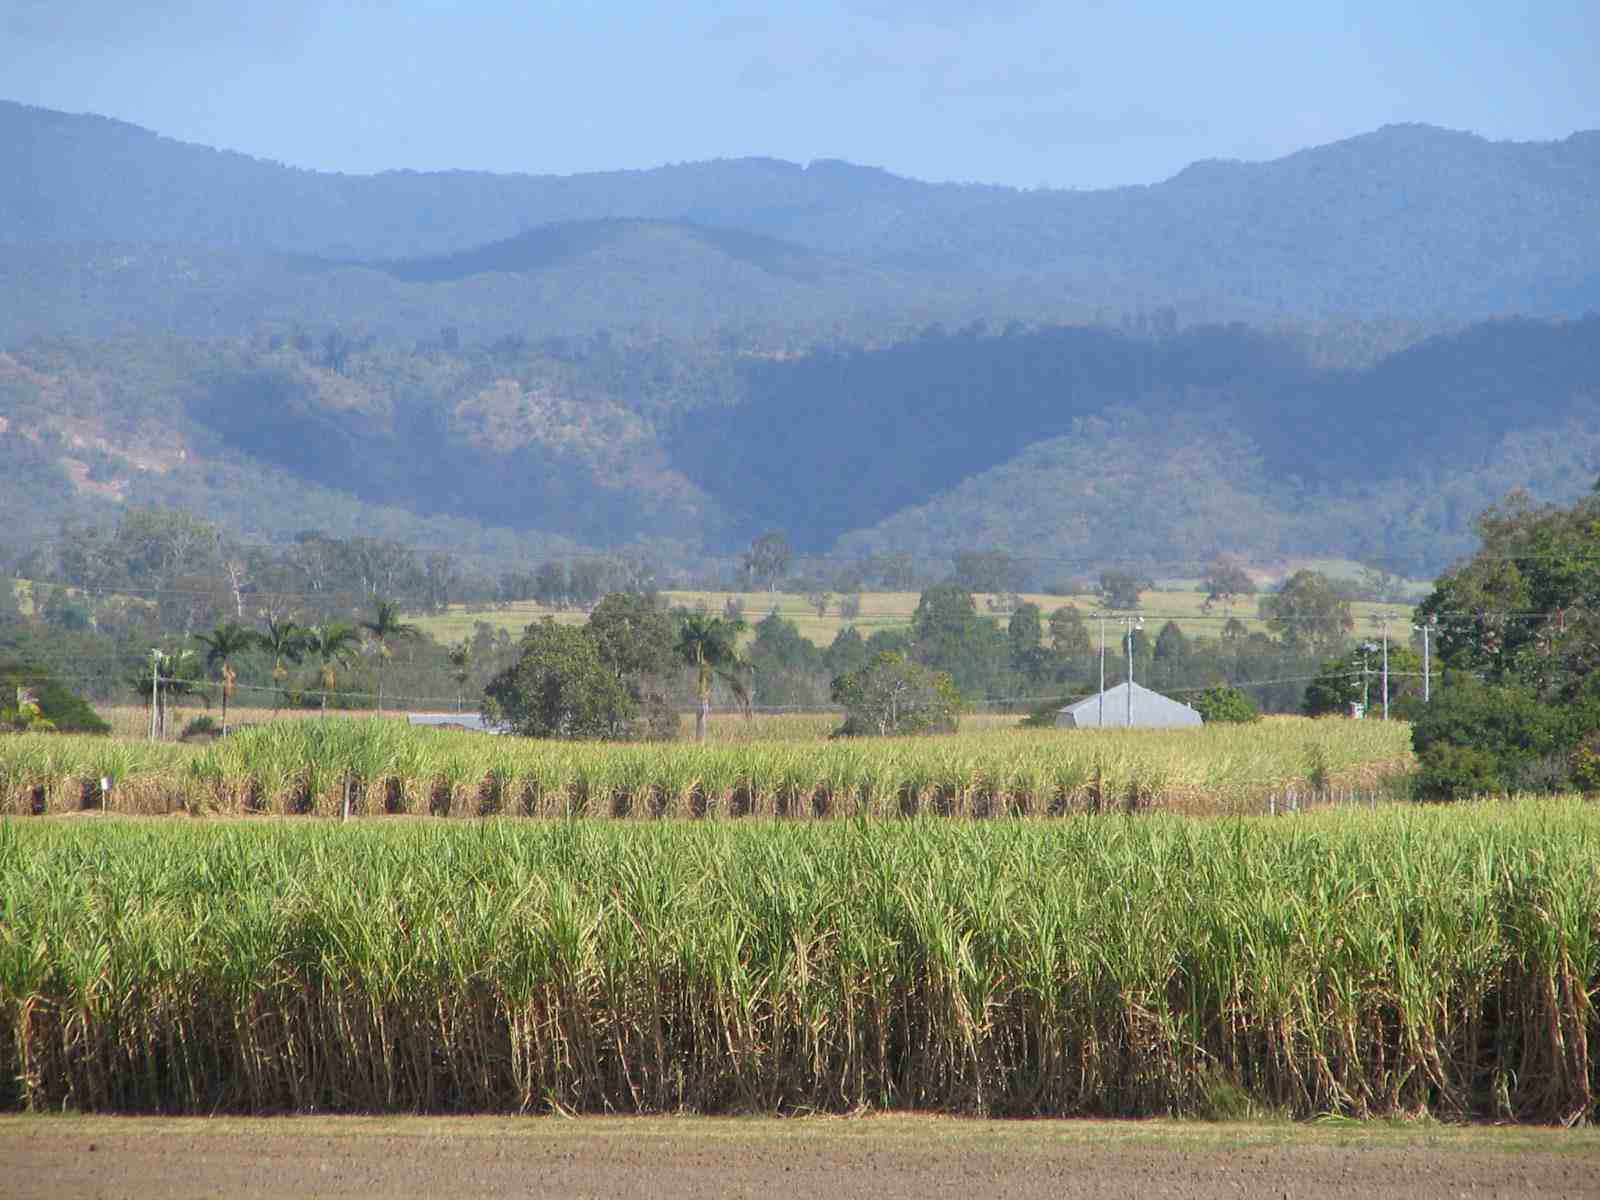 Sugar cane field oz RSLpix